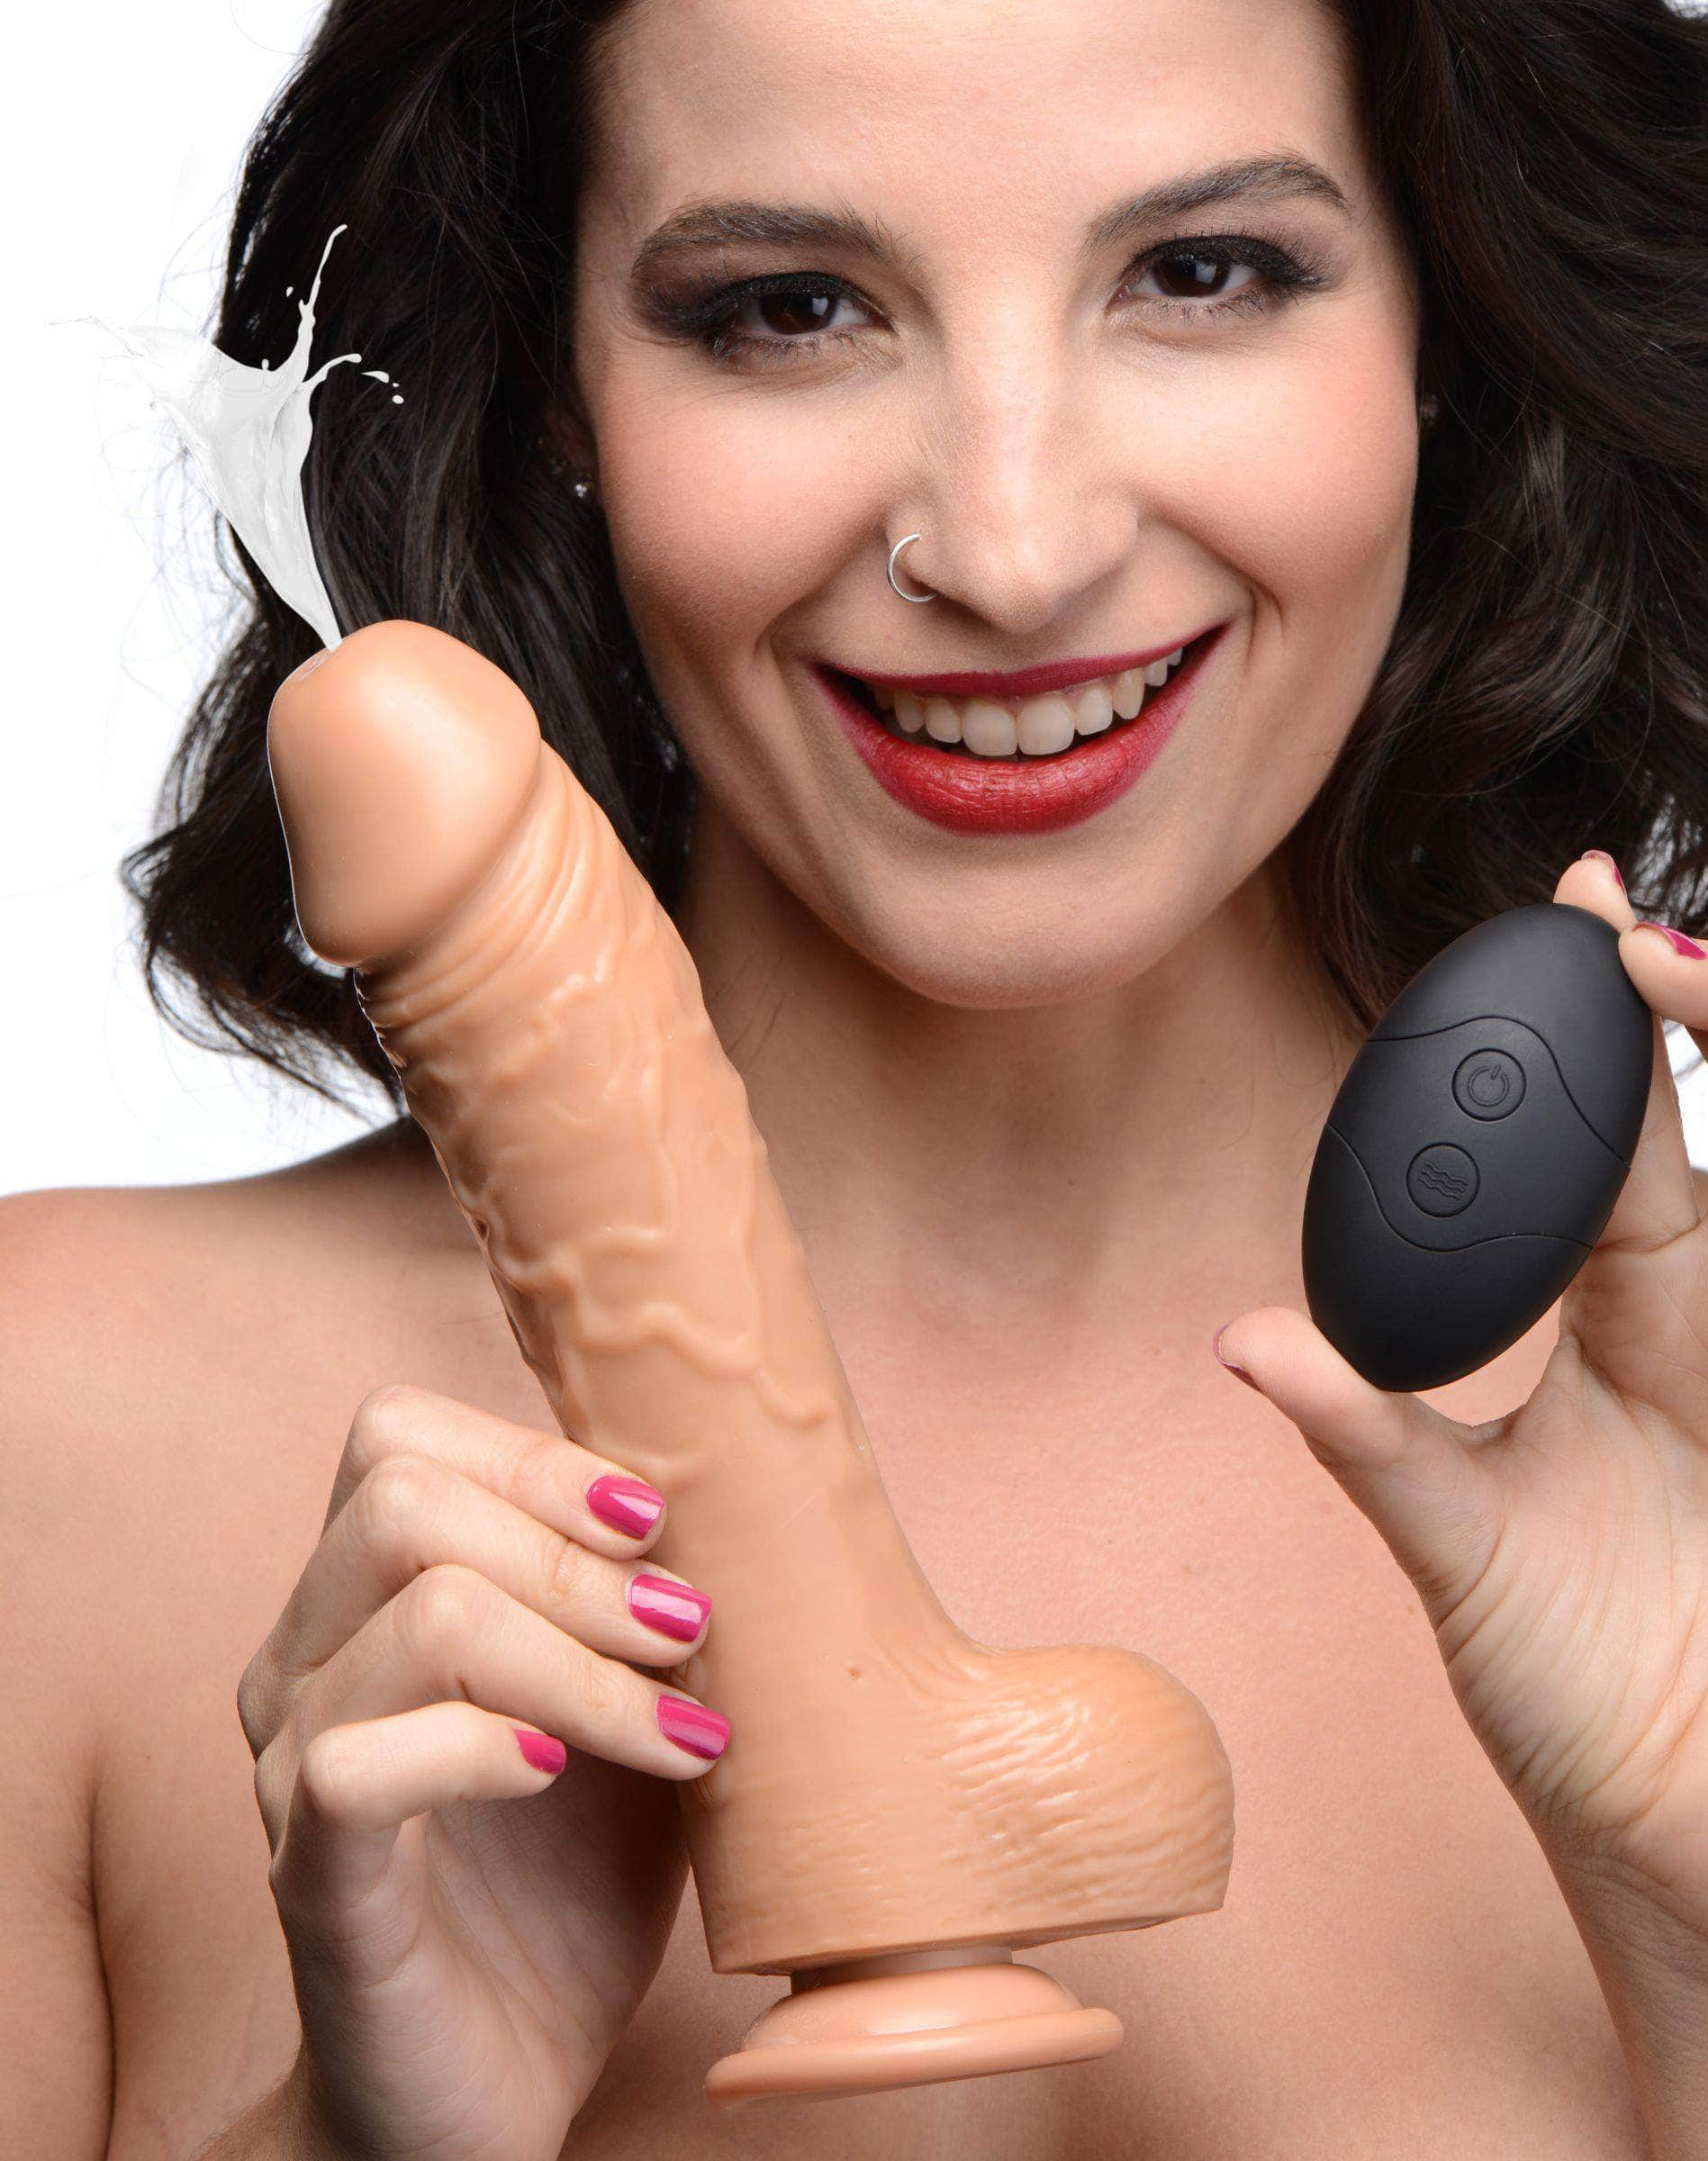 7 Inch Vibrating Squirting Dildo With Remote Control - Medium